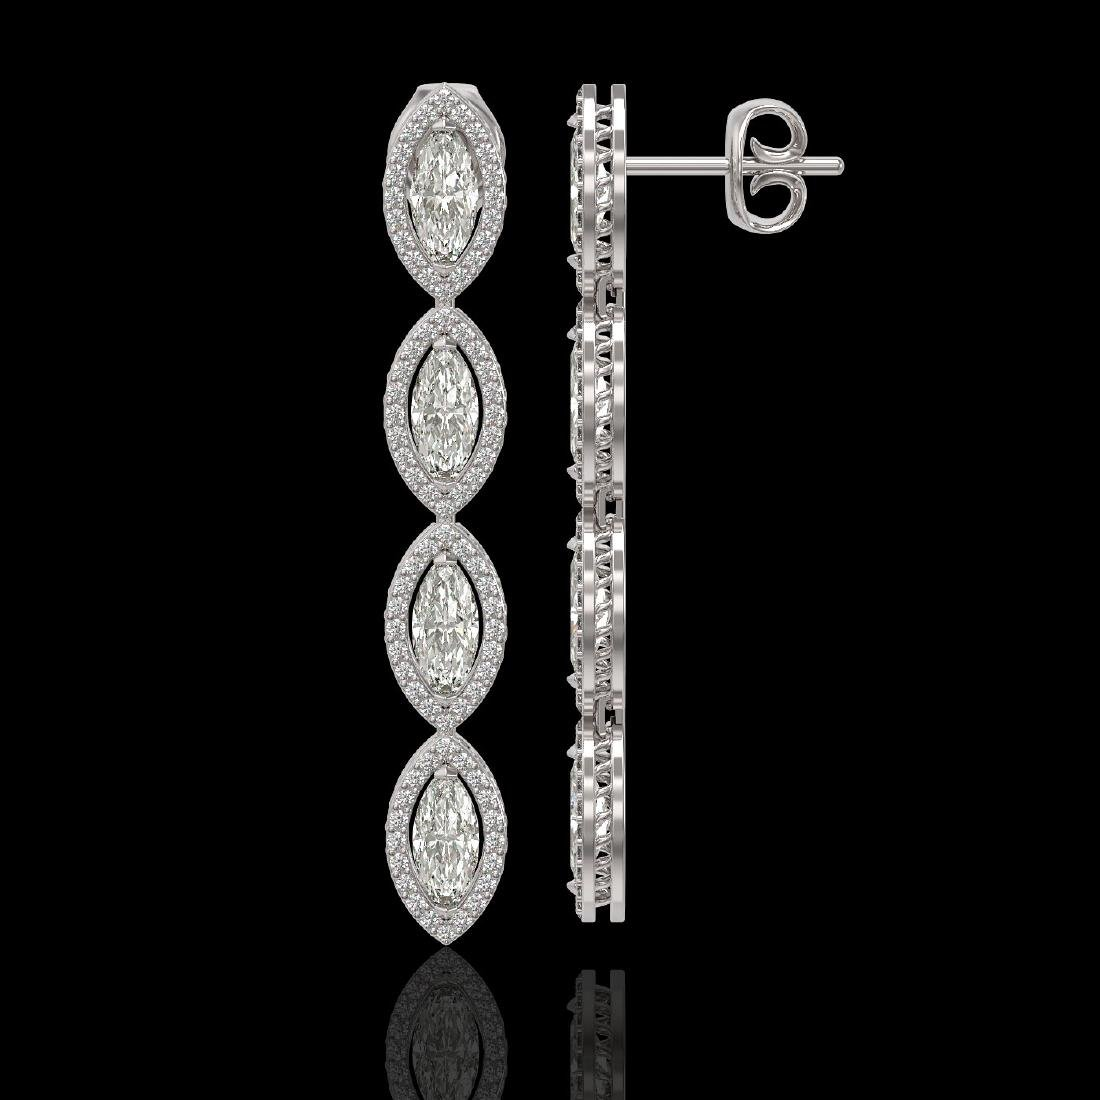 5.33 CTW Marquise Diamond Designer Earrings 18K White - 2